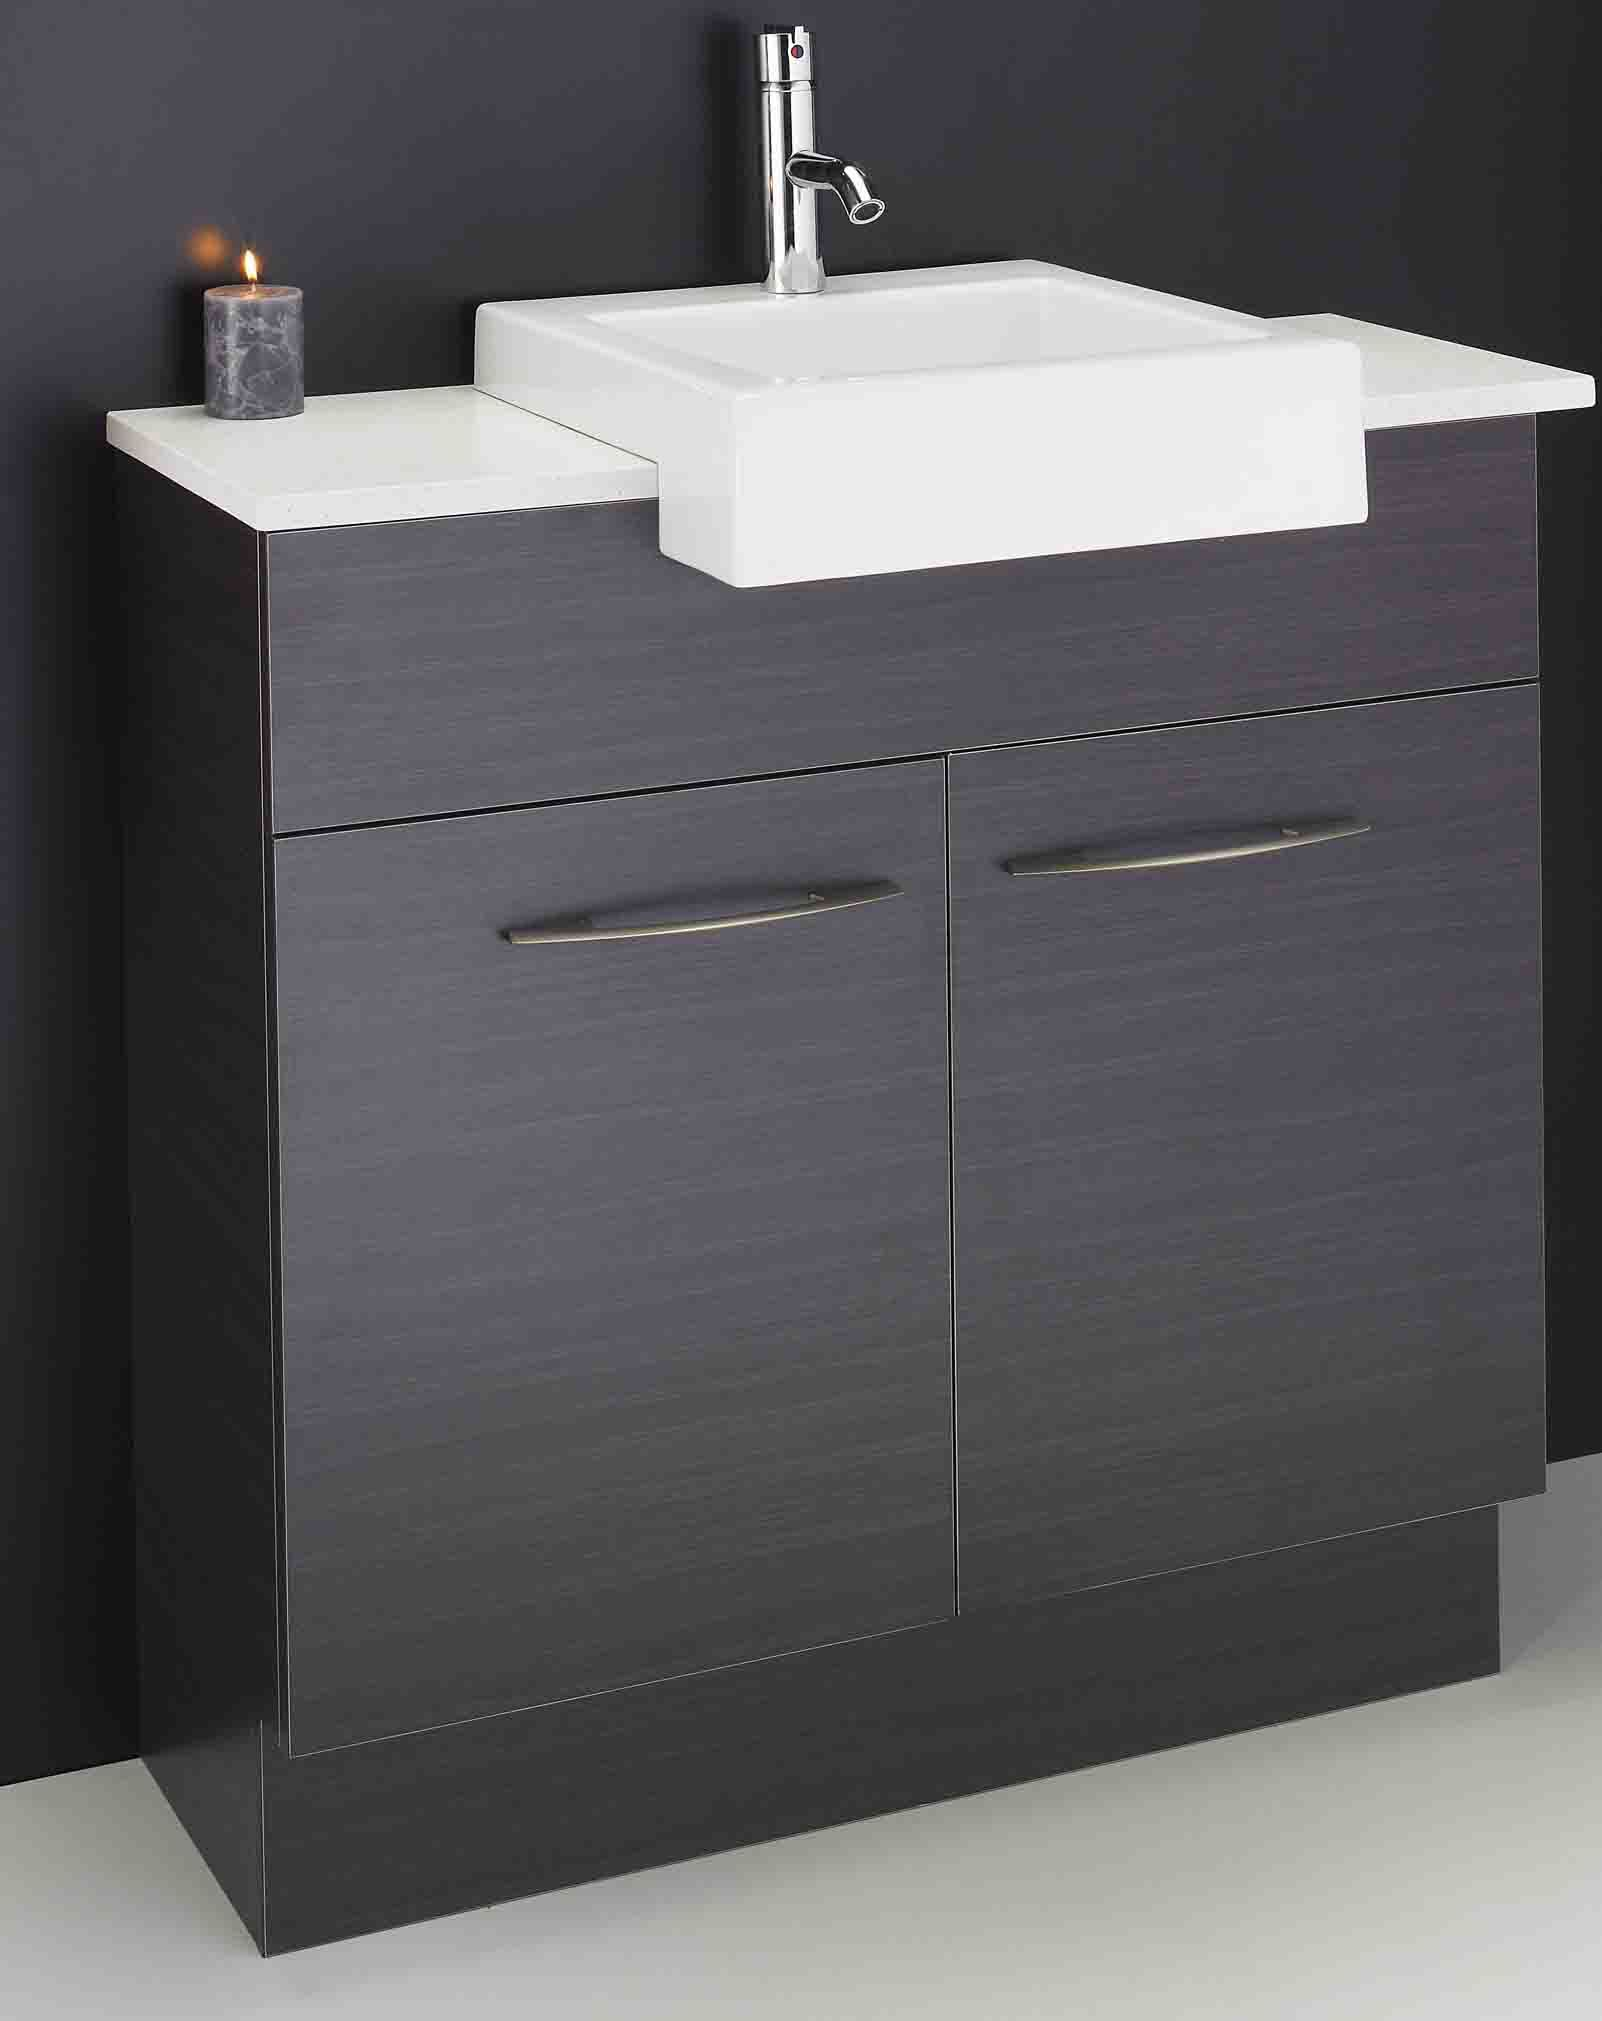 Bathroom Vanity Units Sydney Semi Recessed Vanity Unit Ensuite Sydney Google Search